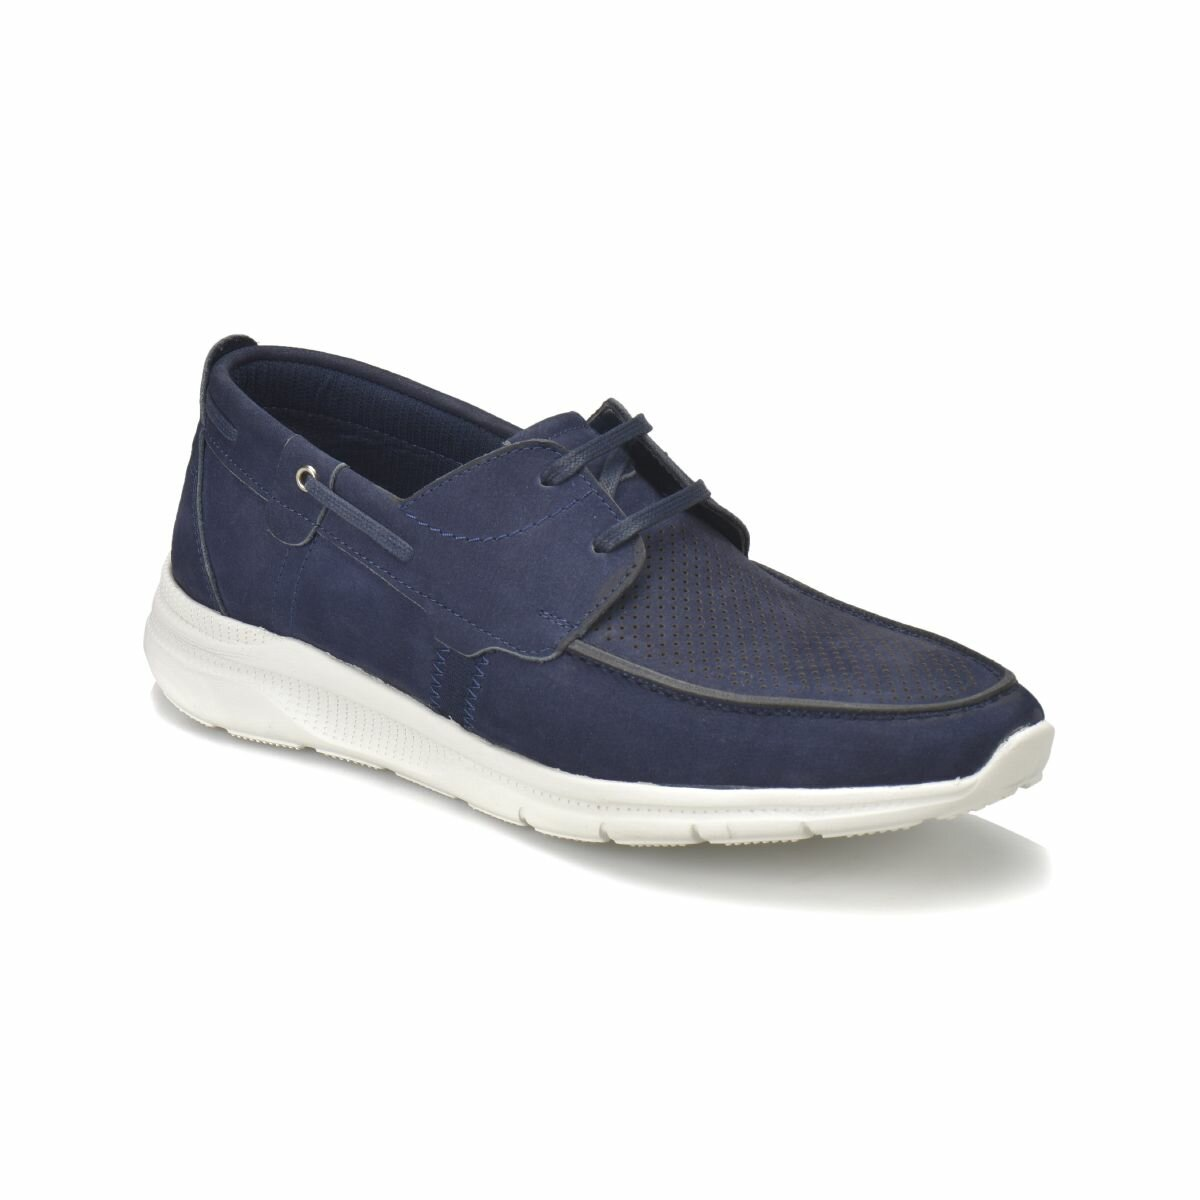 FLO 70423 Navy Blue Men 'S Modern Shoes Flogart